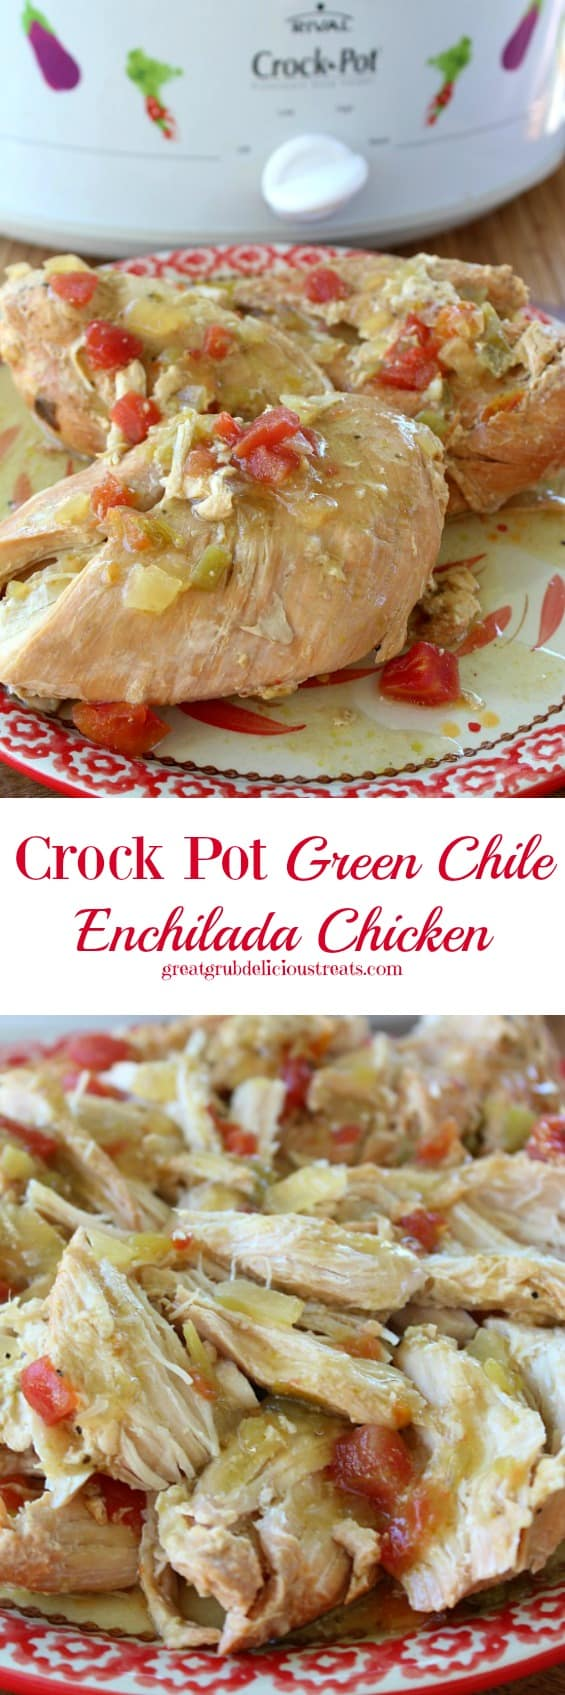 Crock Pot Green Chile Enchilada Chicken